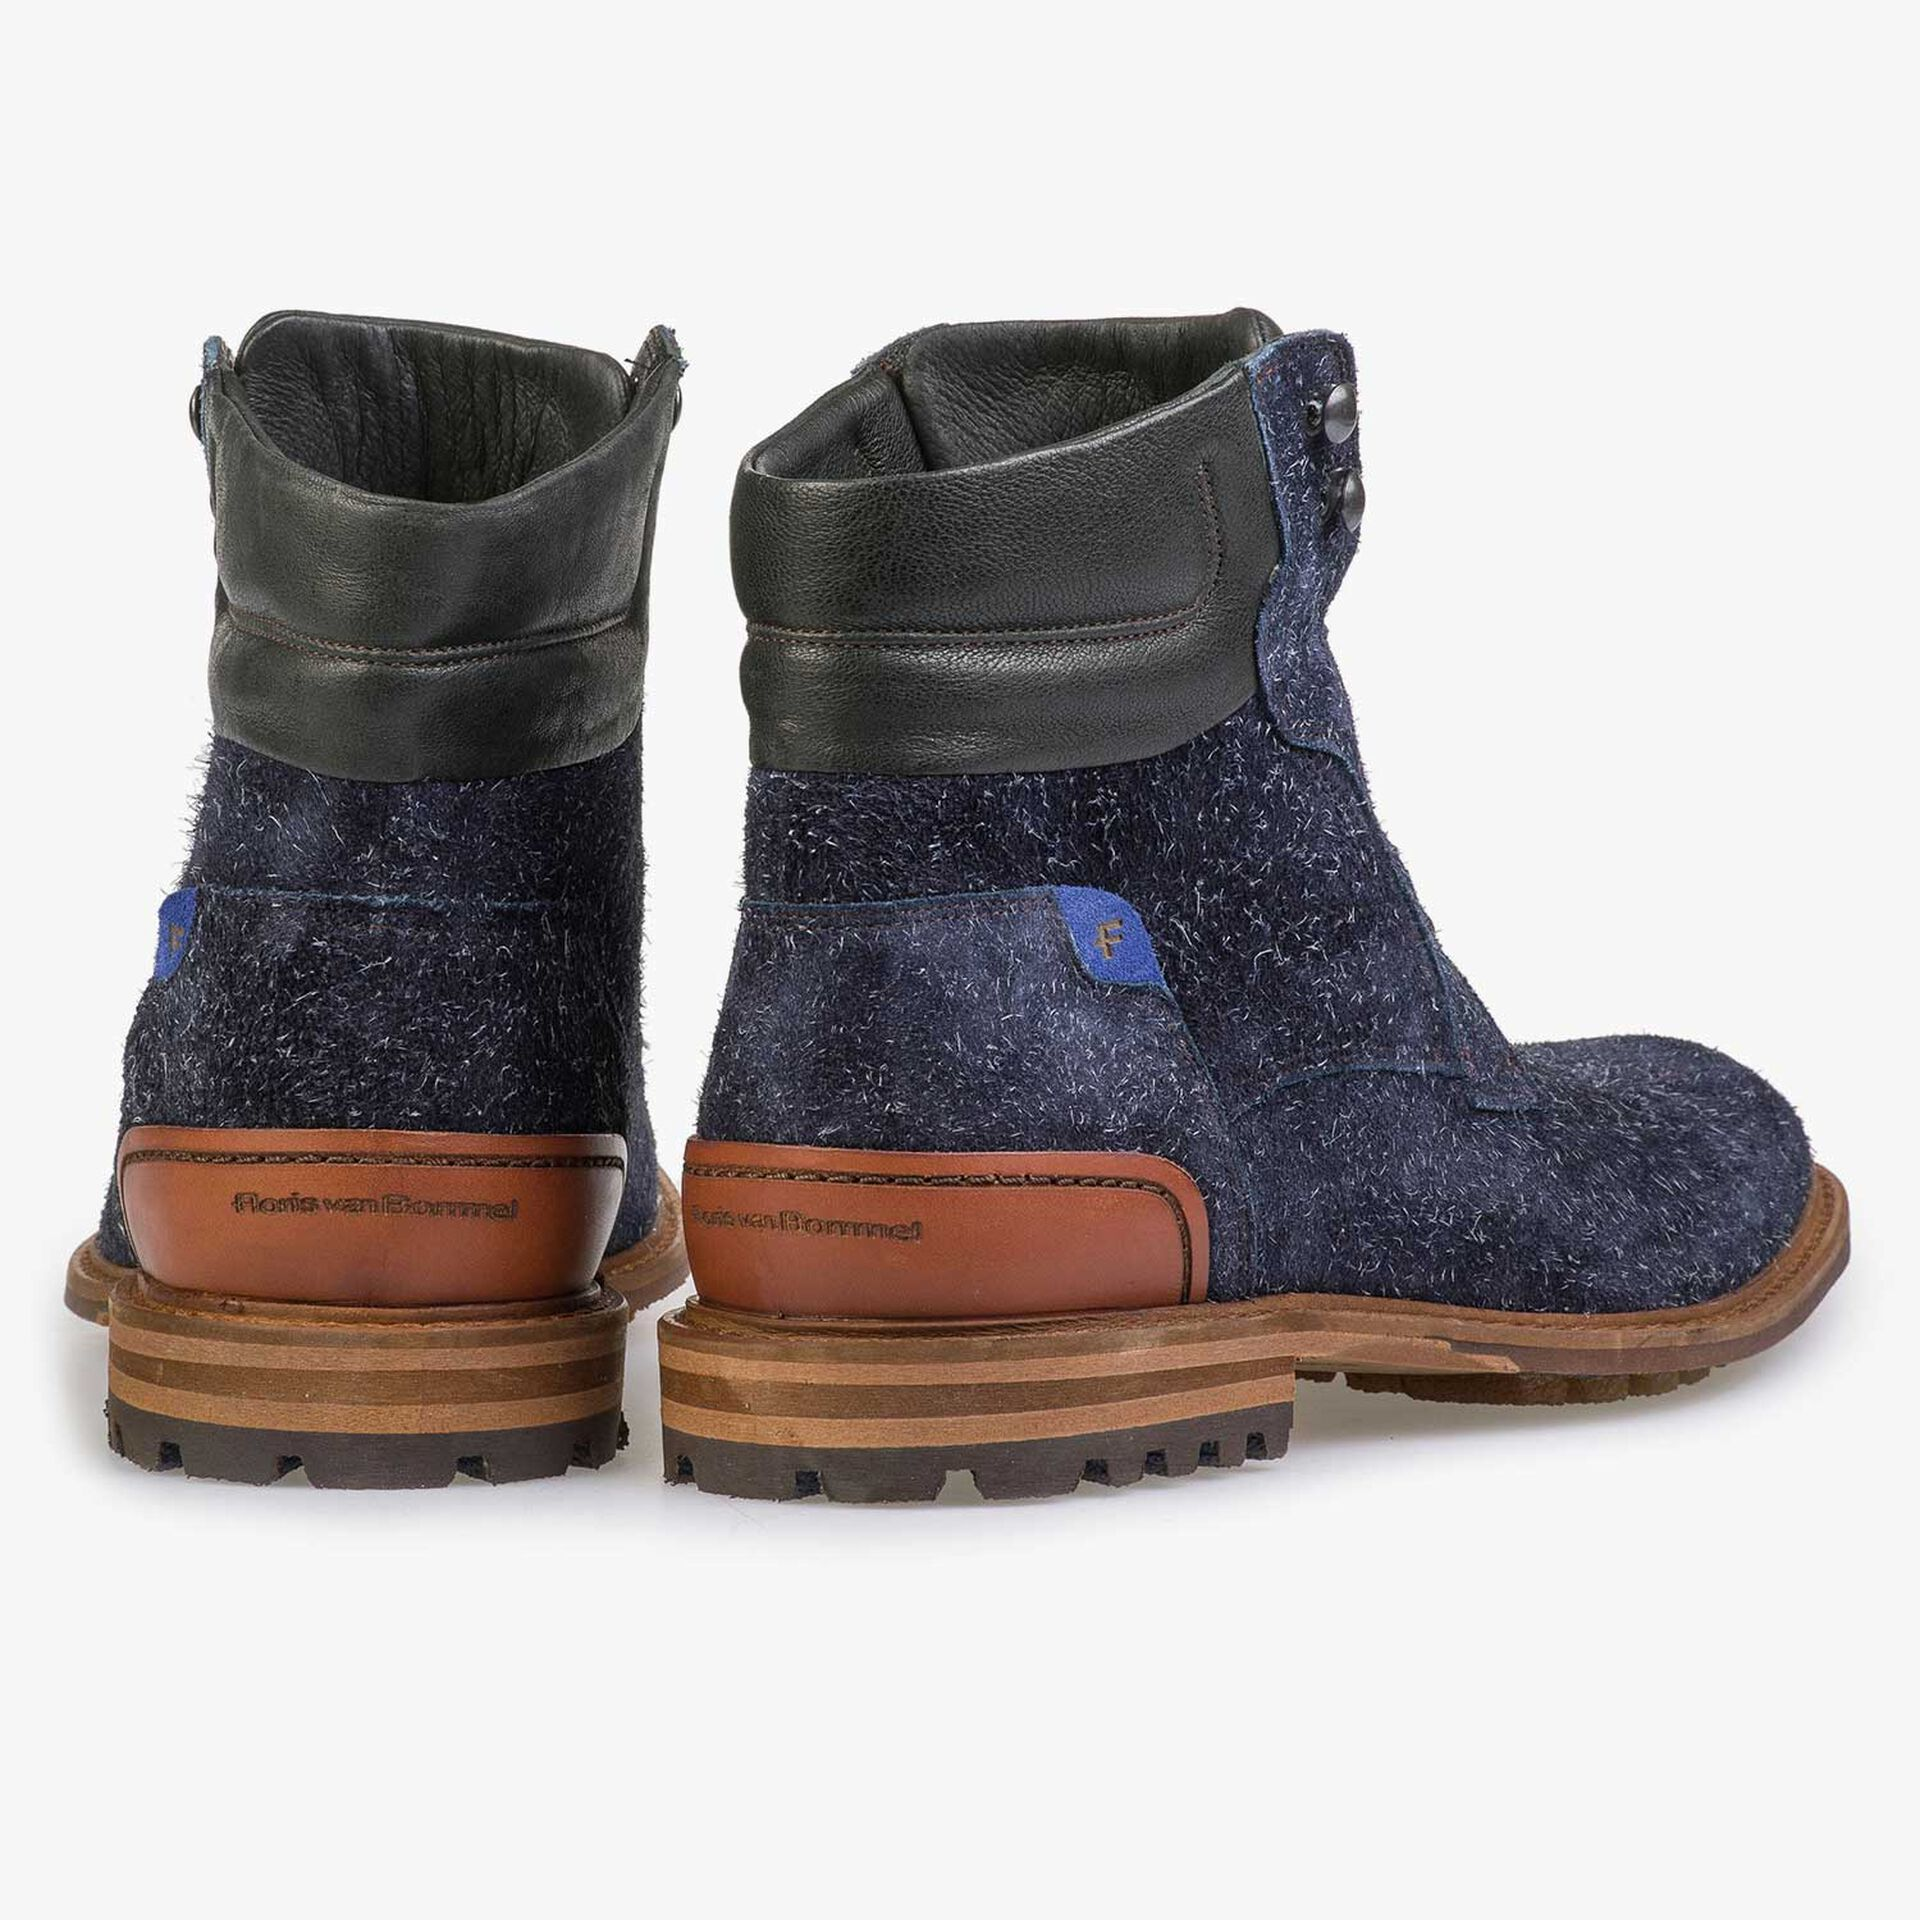 Blue rough-leather lace boot